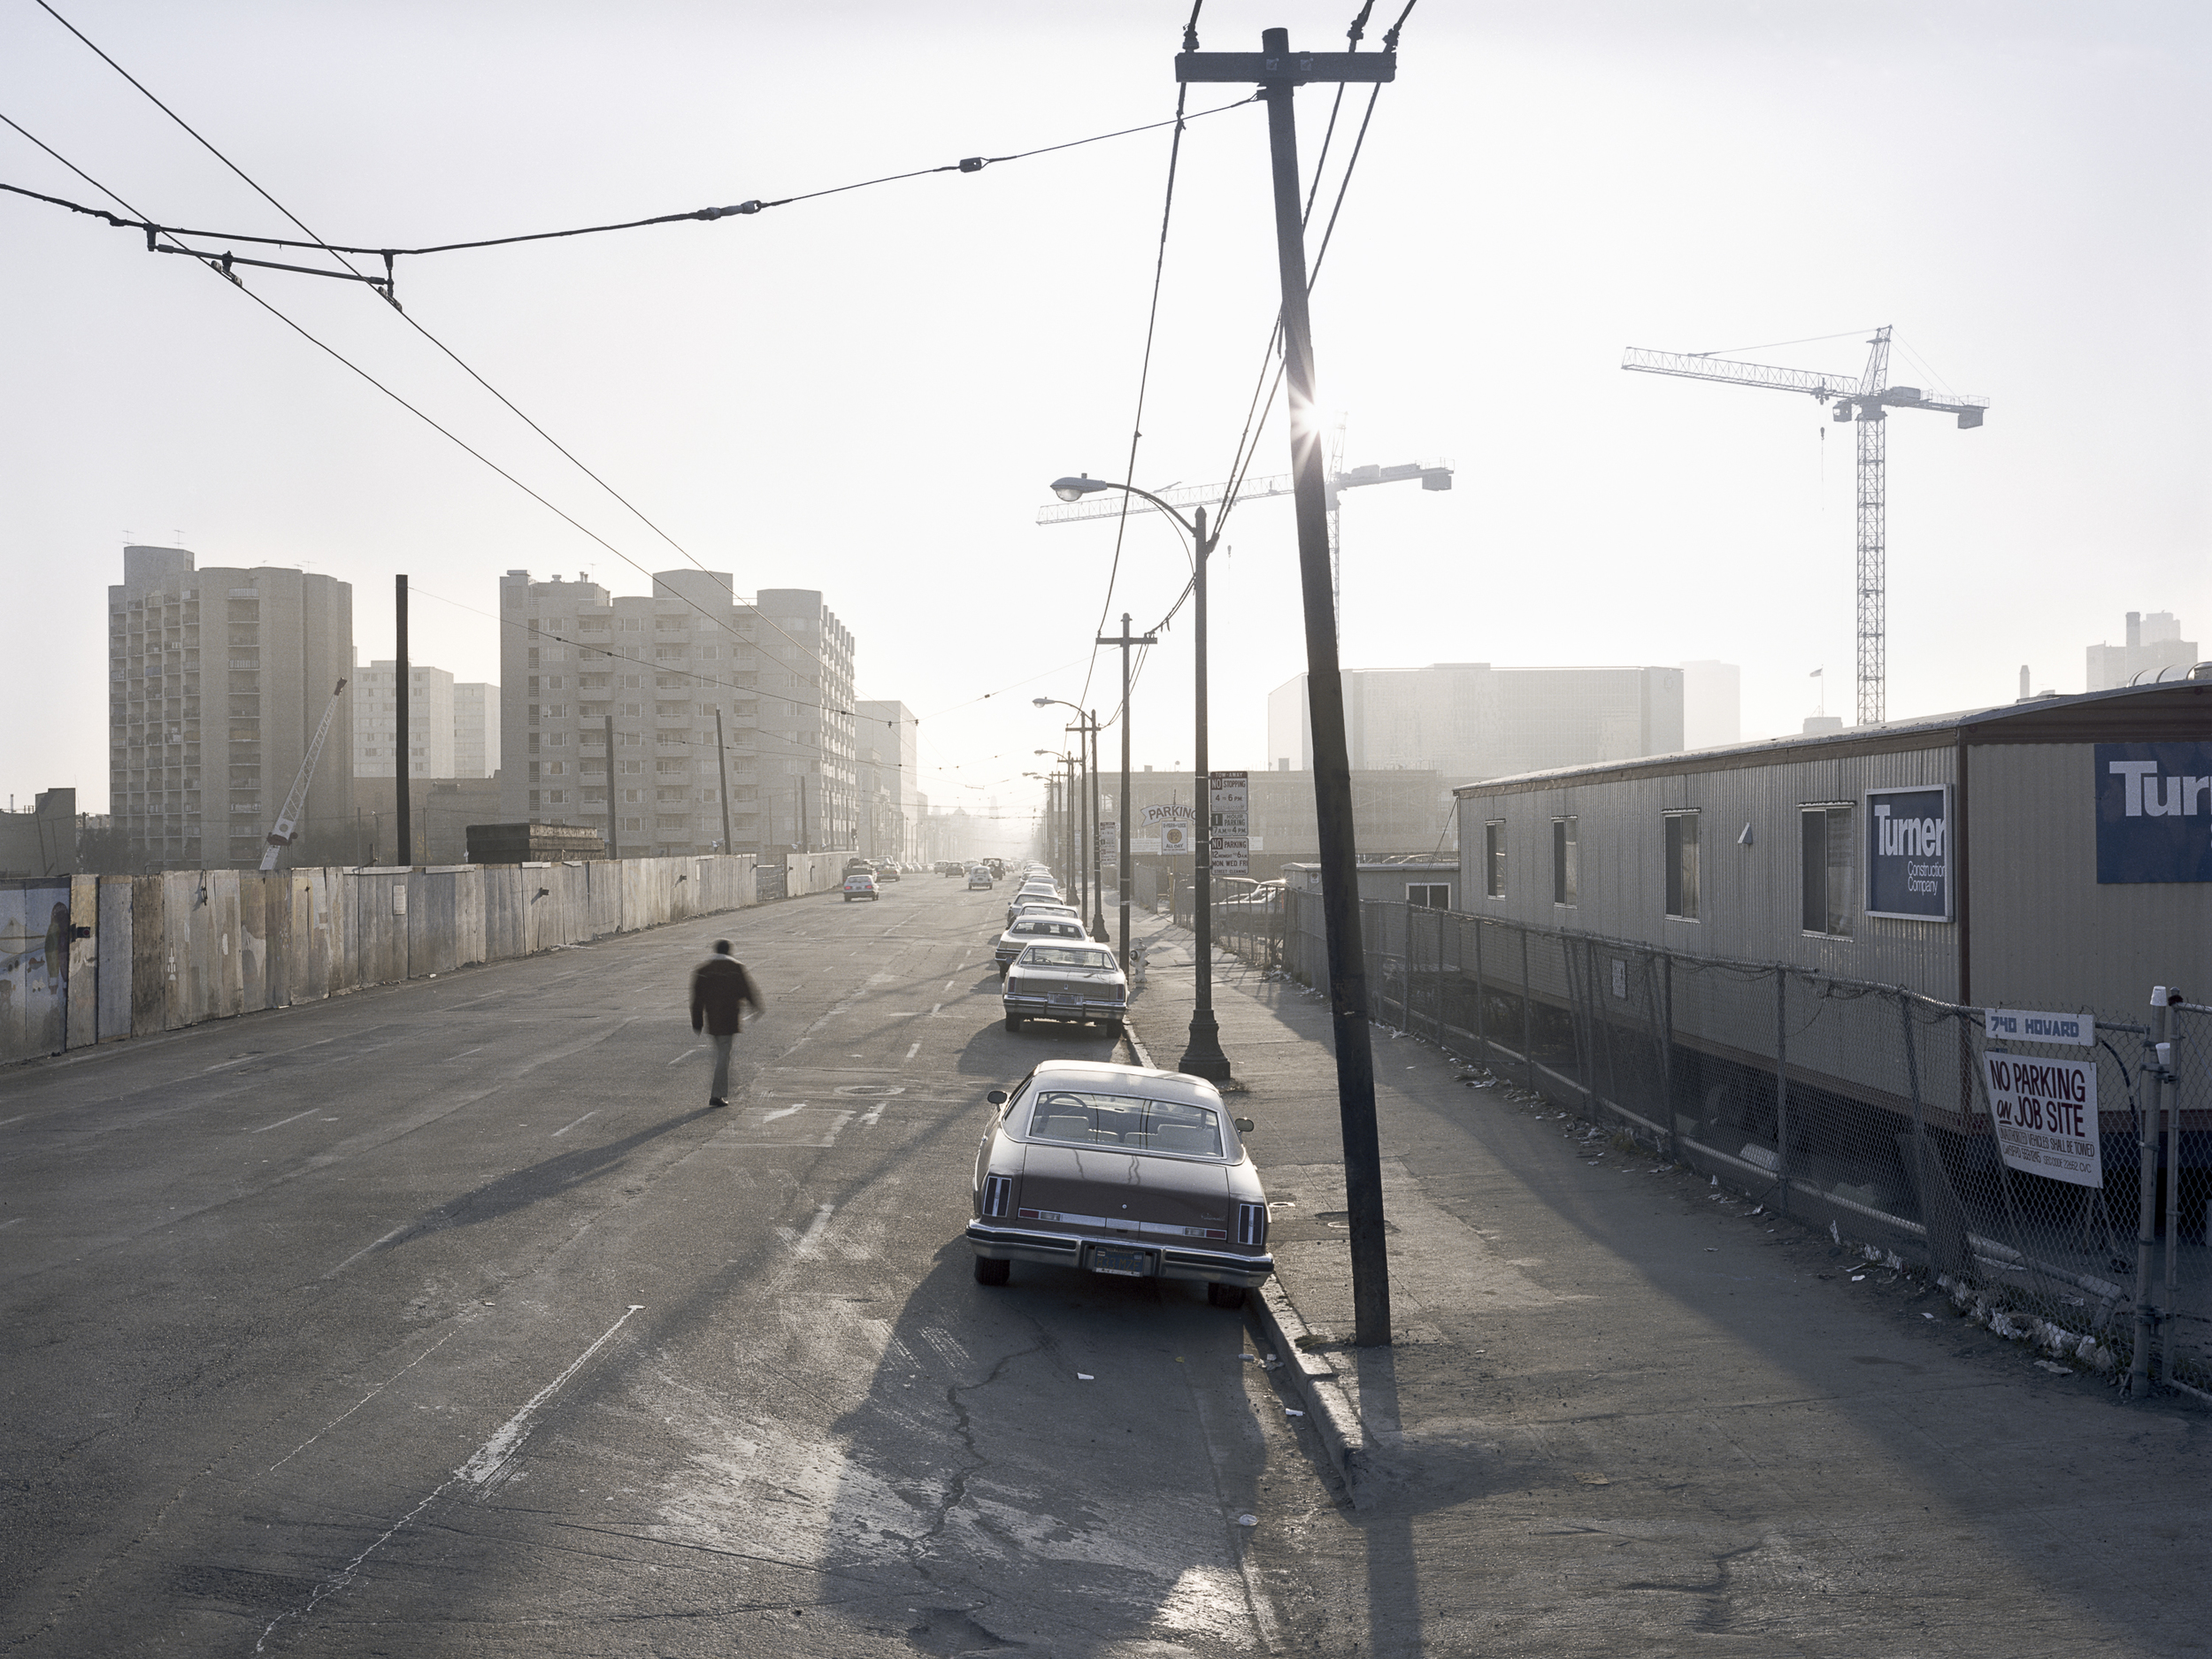 JANET DELANEY Saturday afternoon, Howard between 3rd and 4th Streets, 1981 Archival Pigment Print, 2016 16 x 20 inches, edition of 5 20 x 24 inches, edition of 2 30 x 40 inches, edition of 2